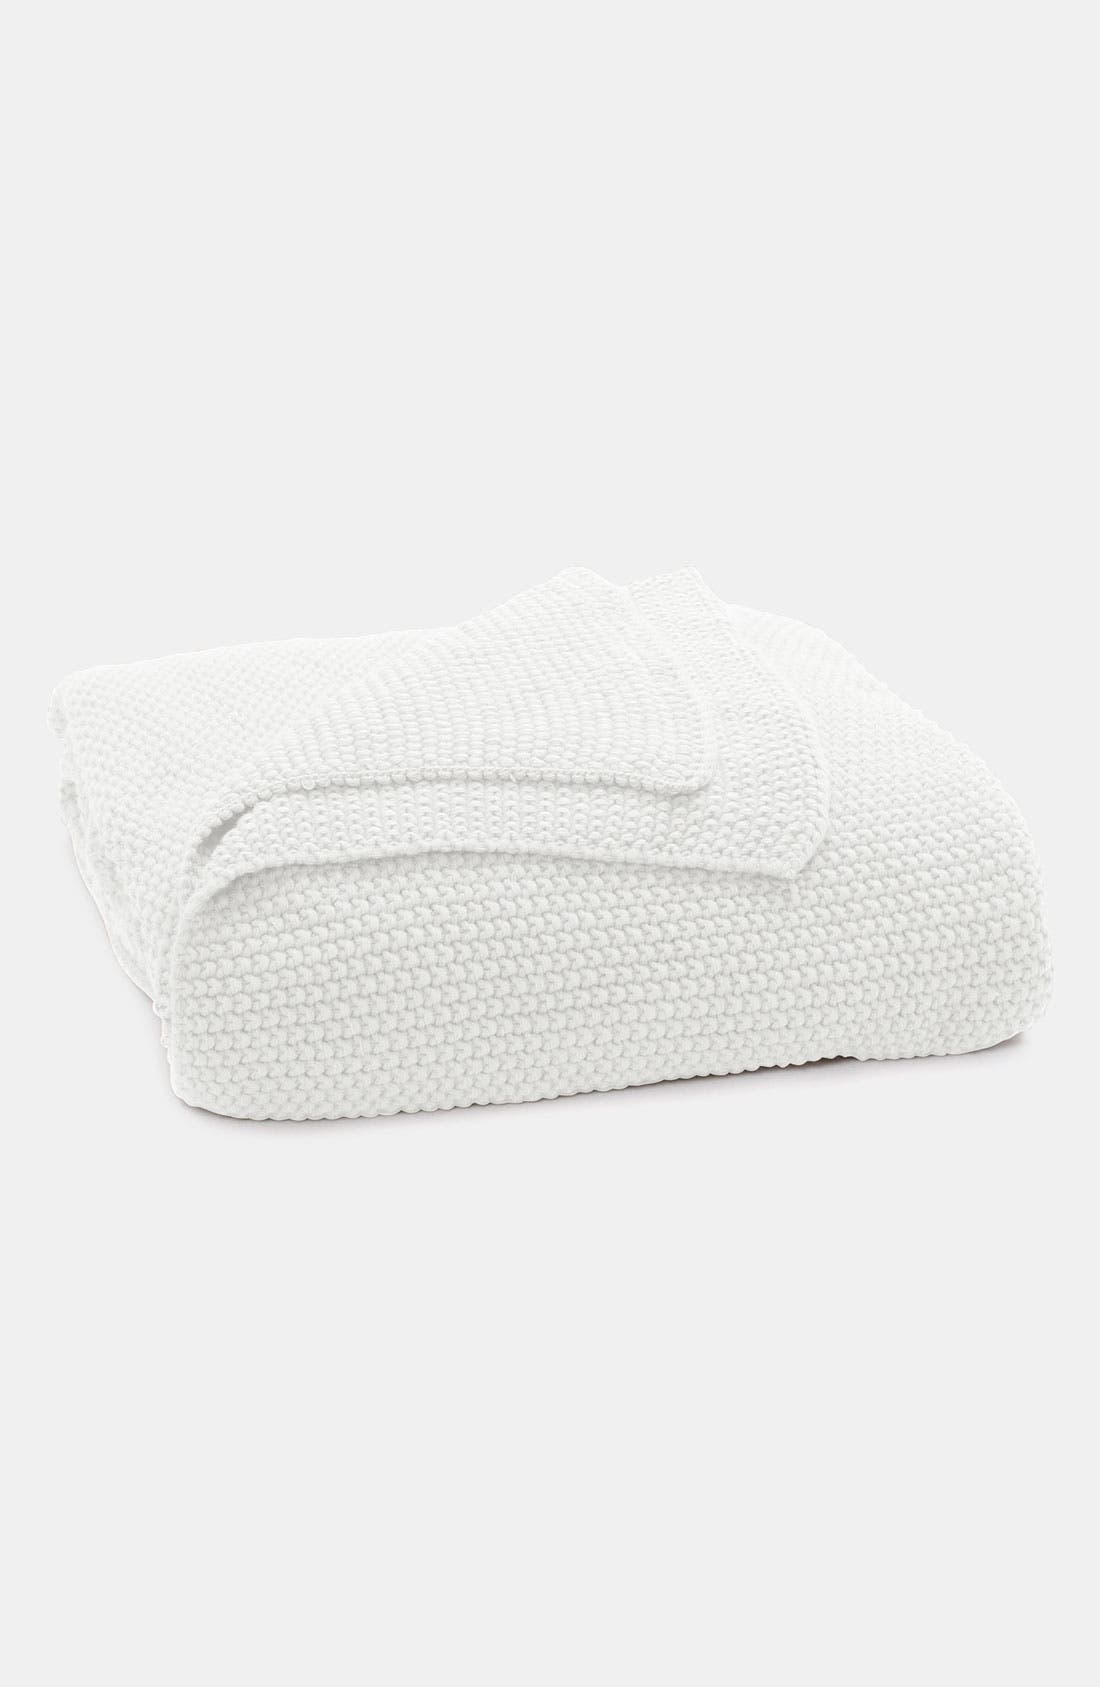 Main Image - Donna Karan 'The Essentials' Knit Throw